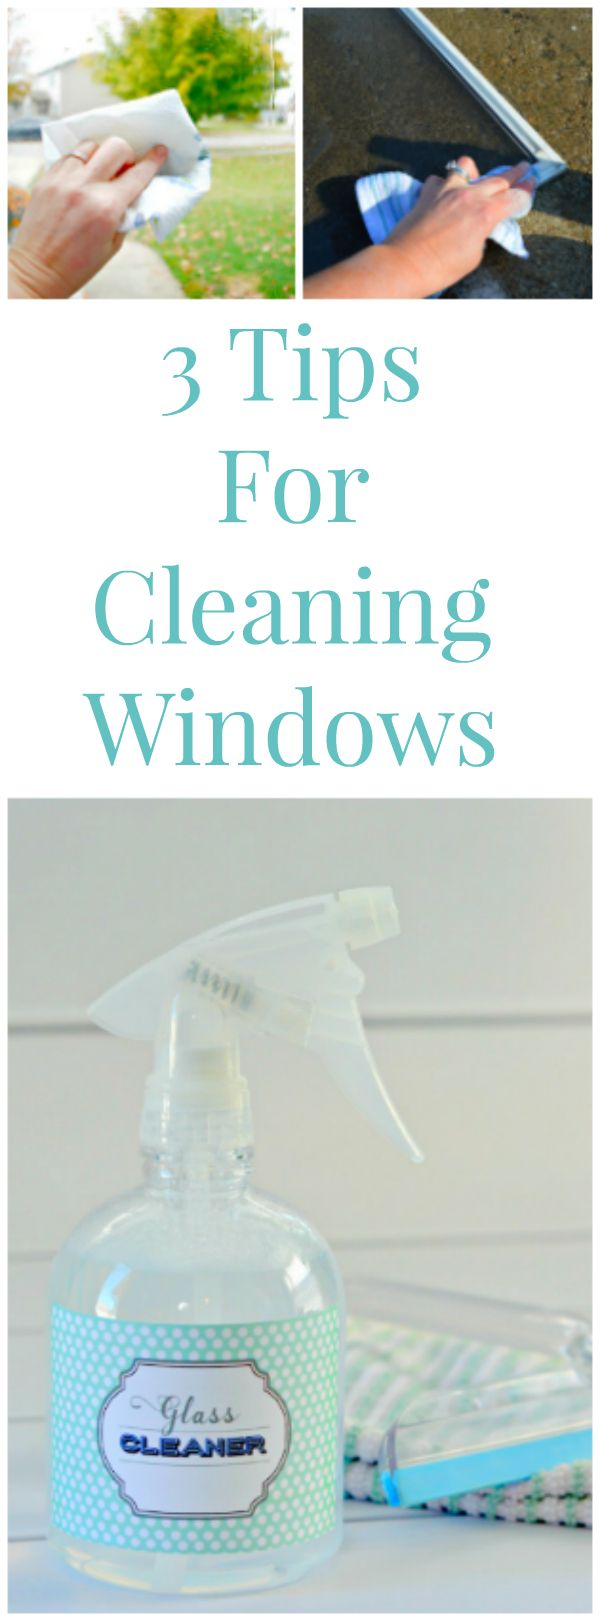 3 Tips for Cleaning Windows including Homemade Glass and Window Cleaner, How To Clean Windows and leave them streak free and How To Clean Window Screens